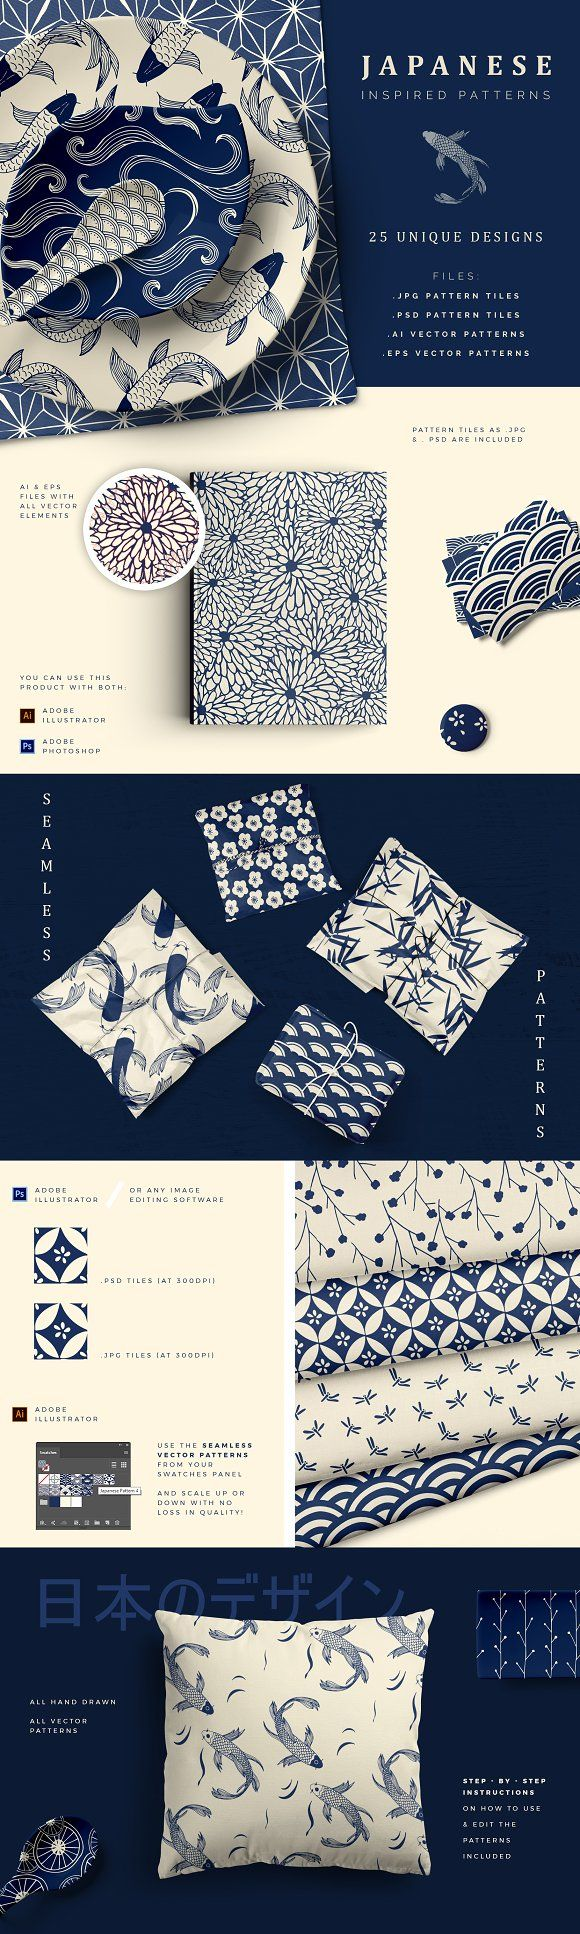 Japanese Patterns by Youandigraphics on @creativemarket